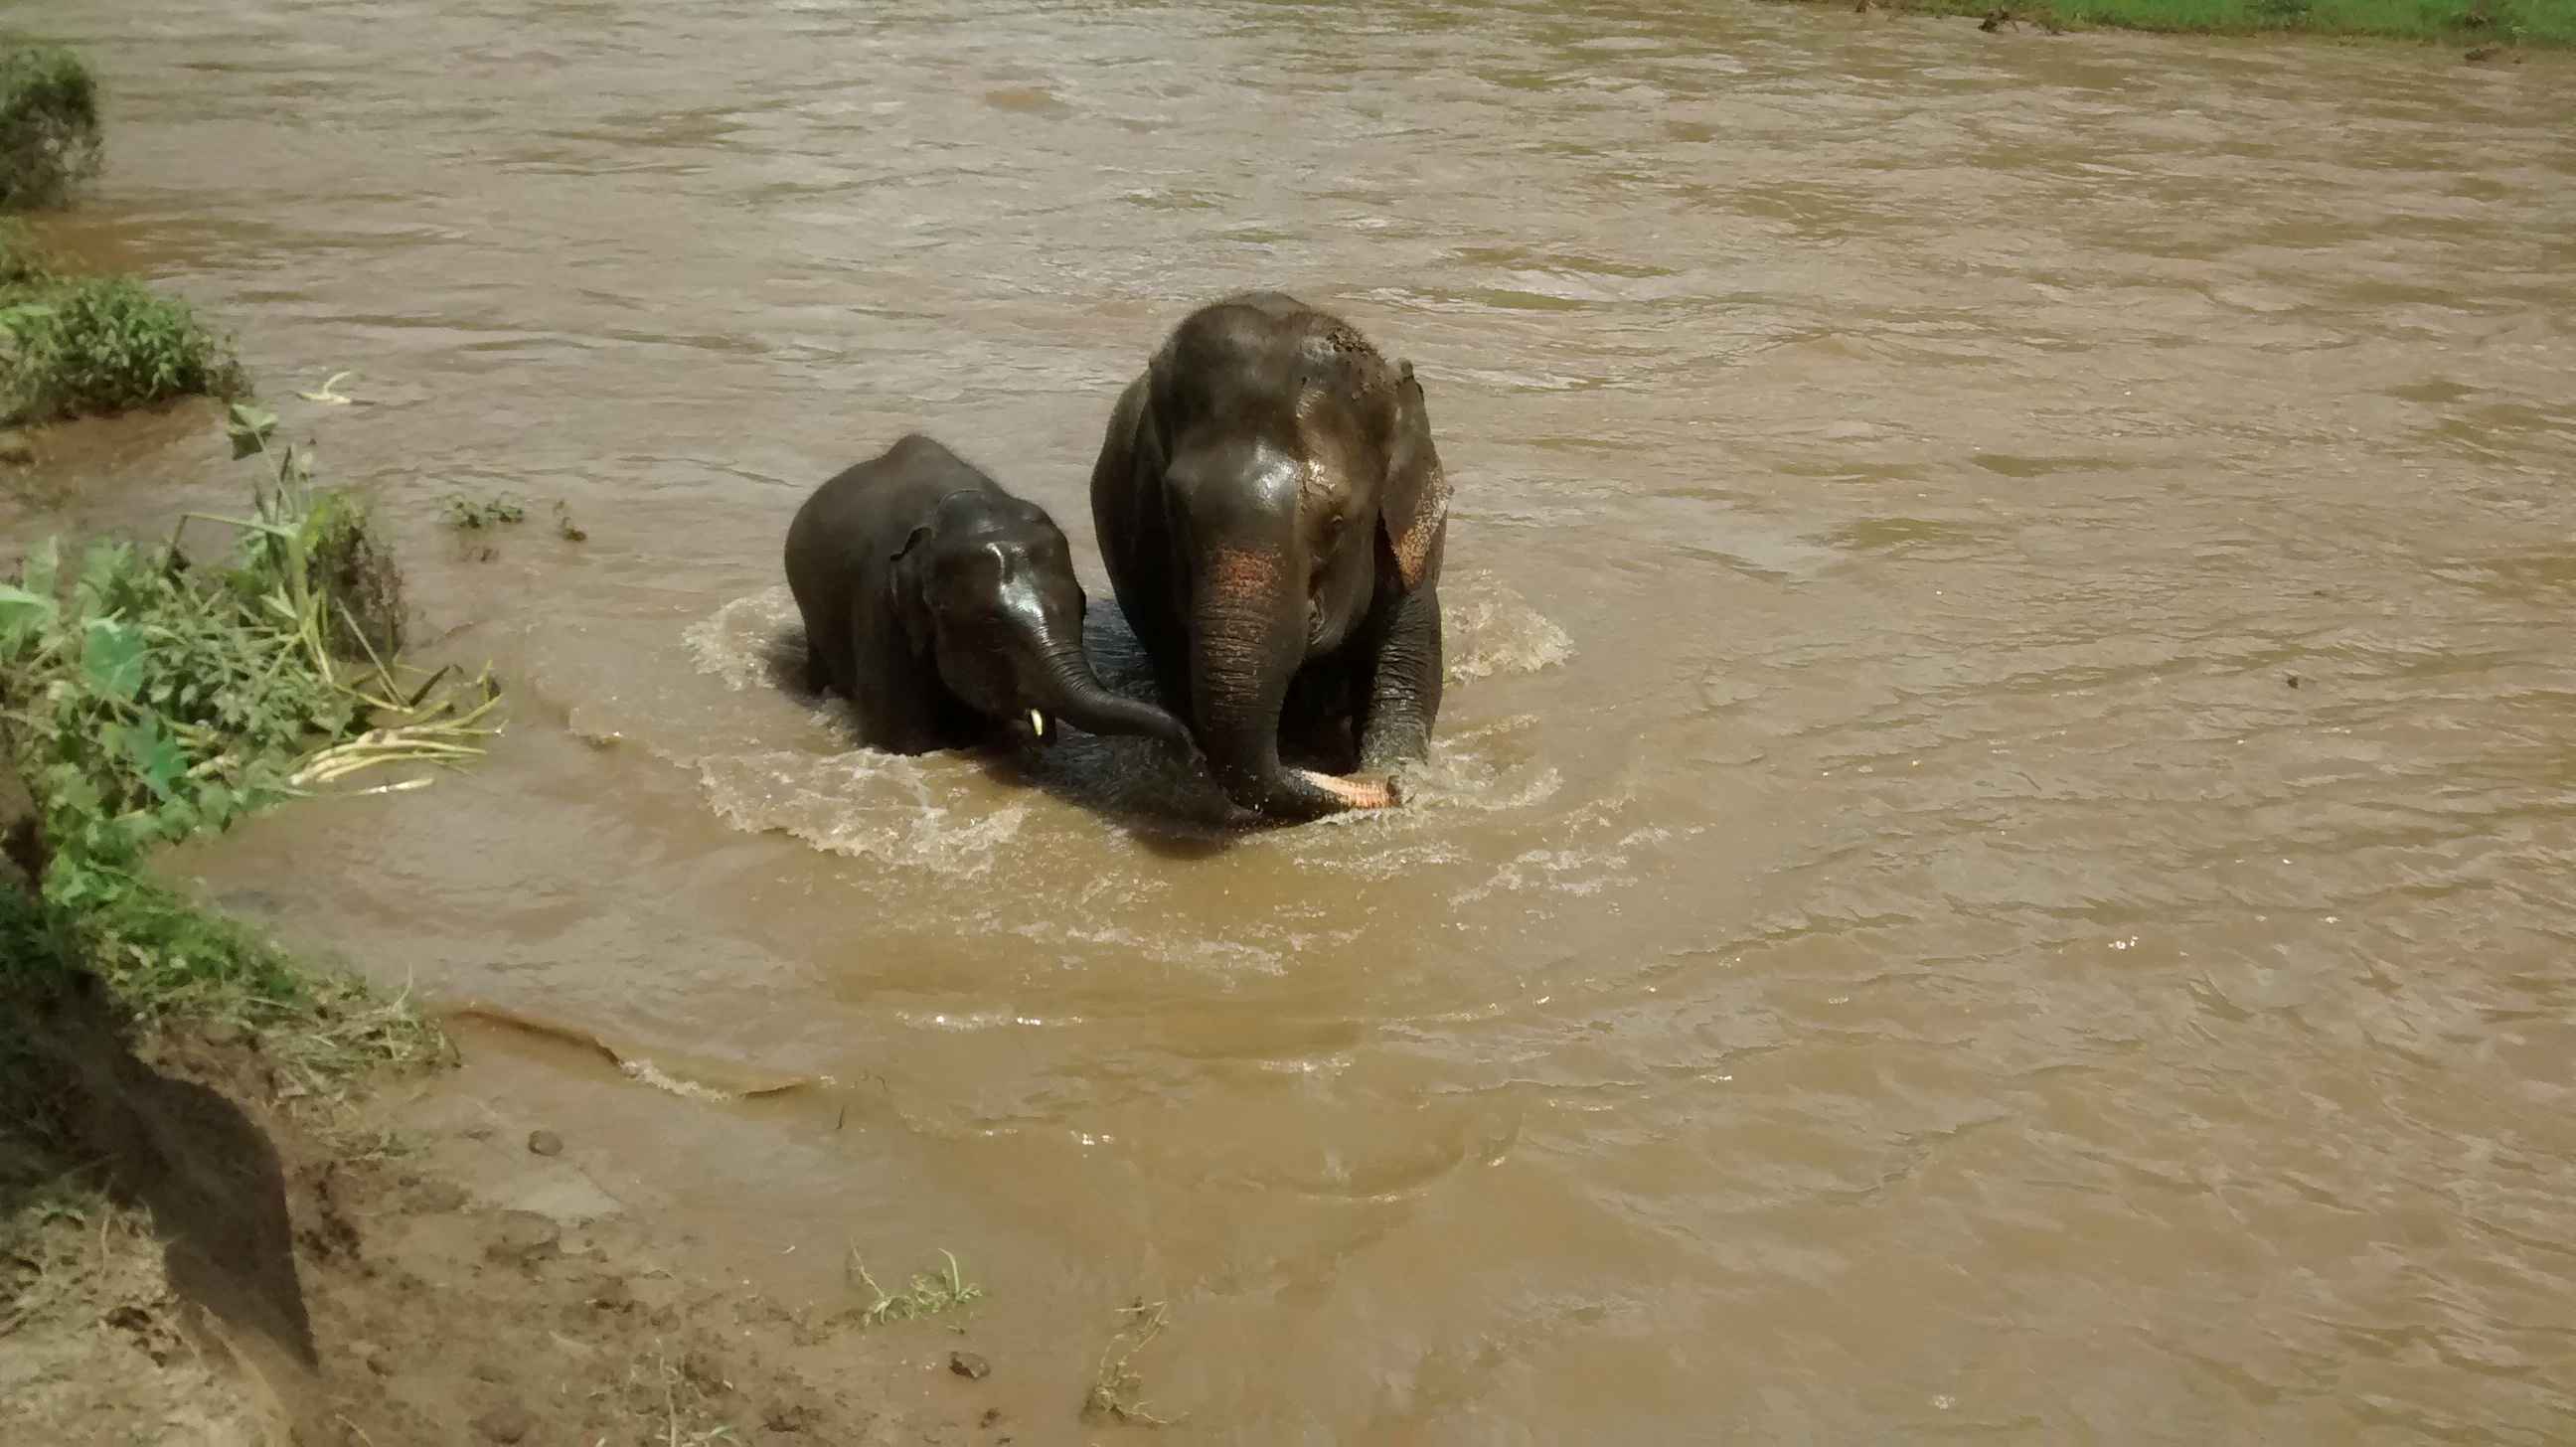 A quick swim with the elephants